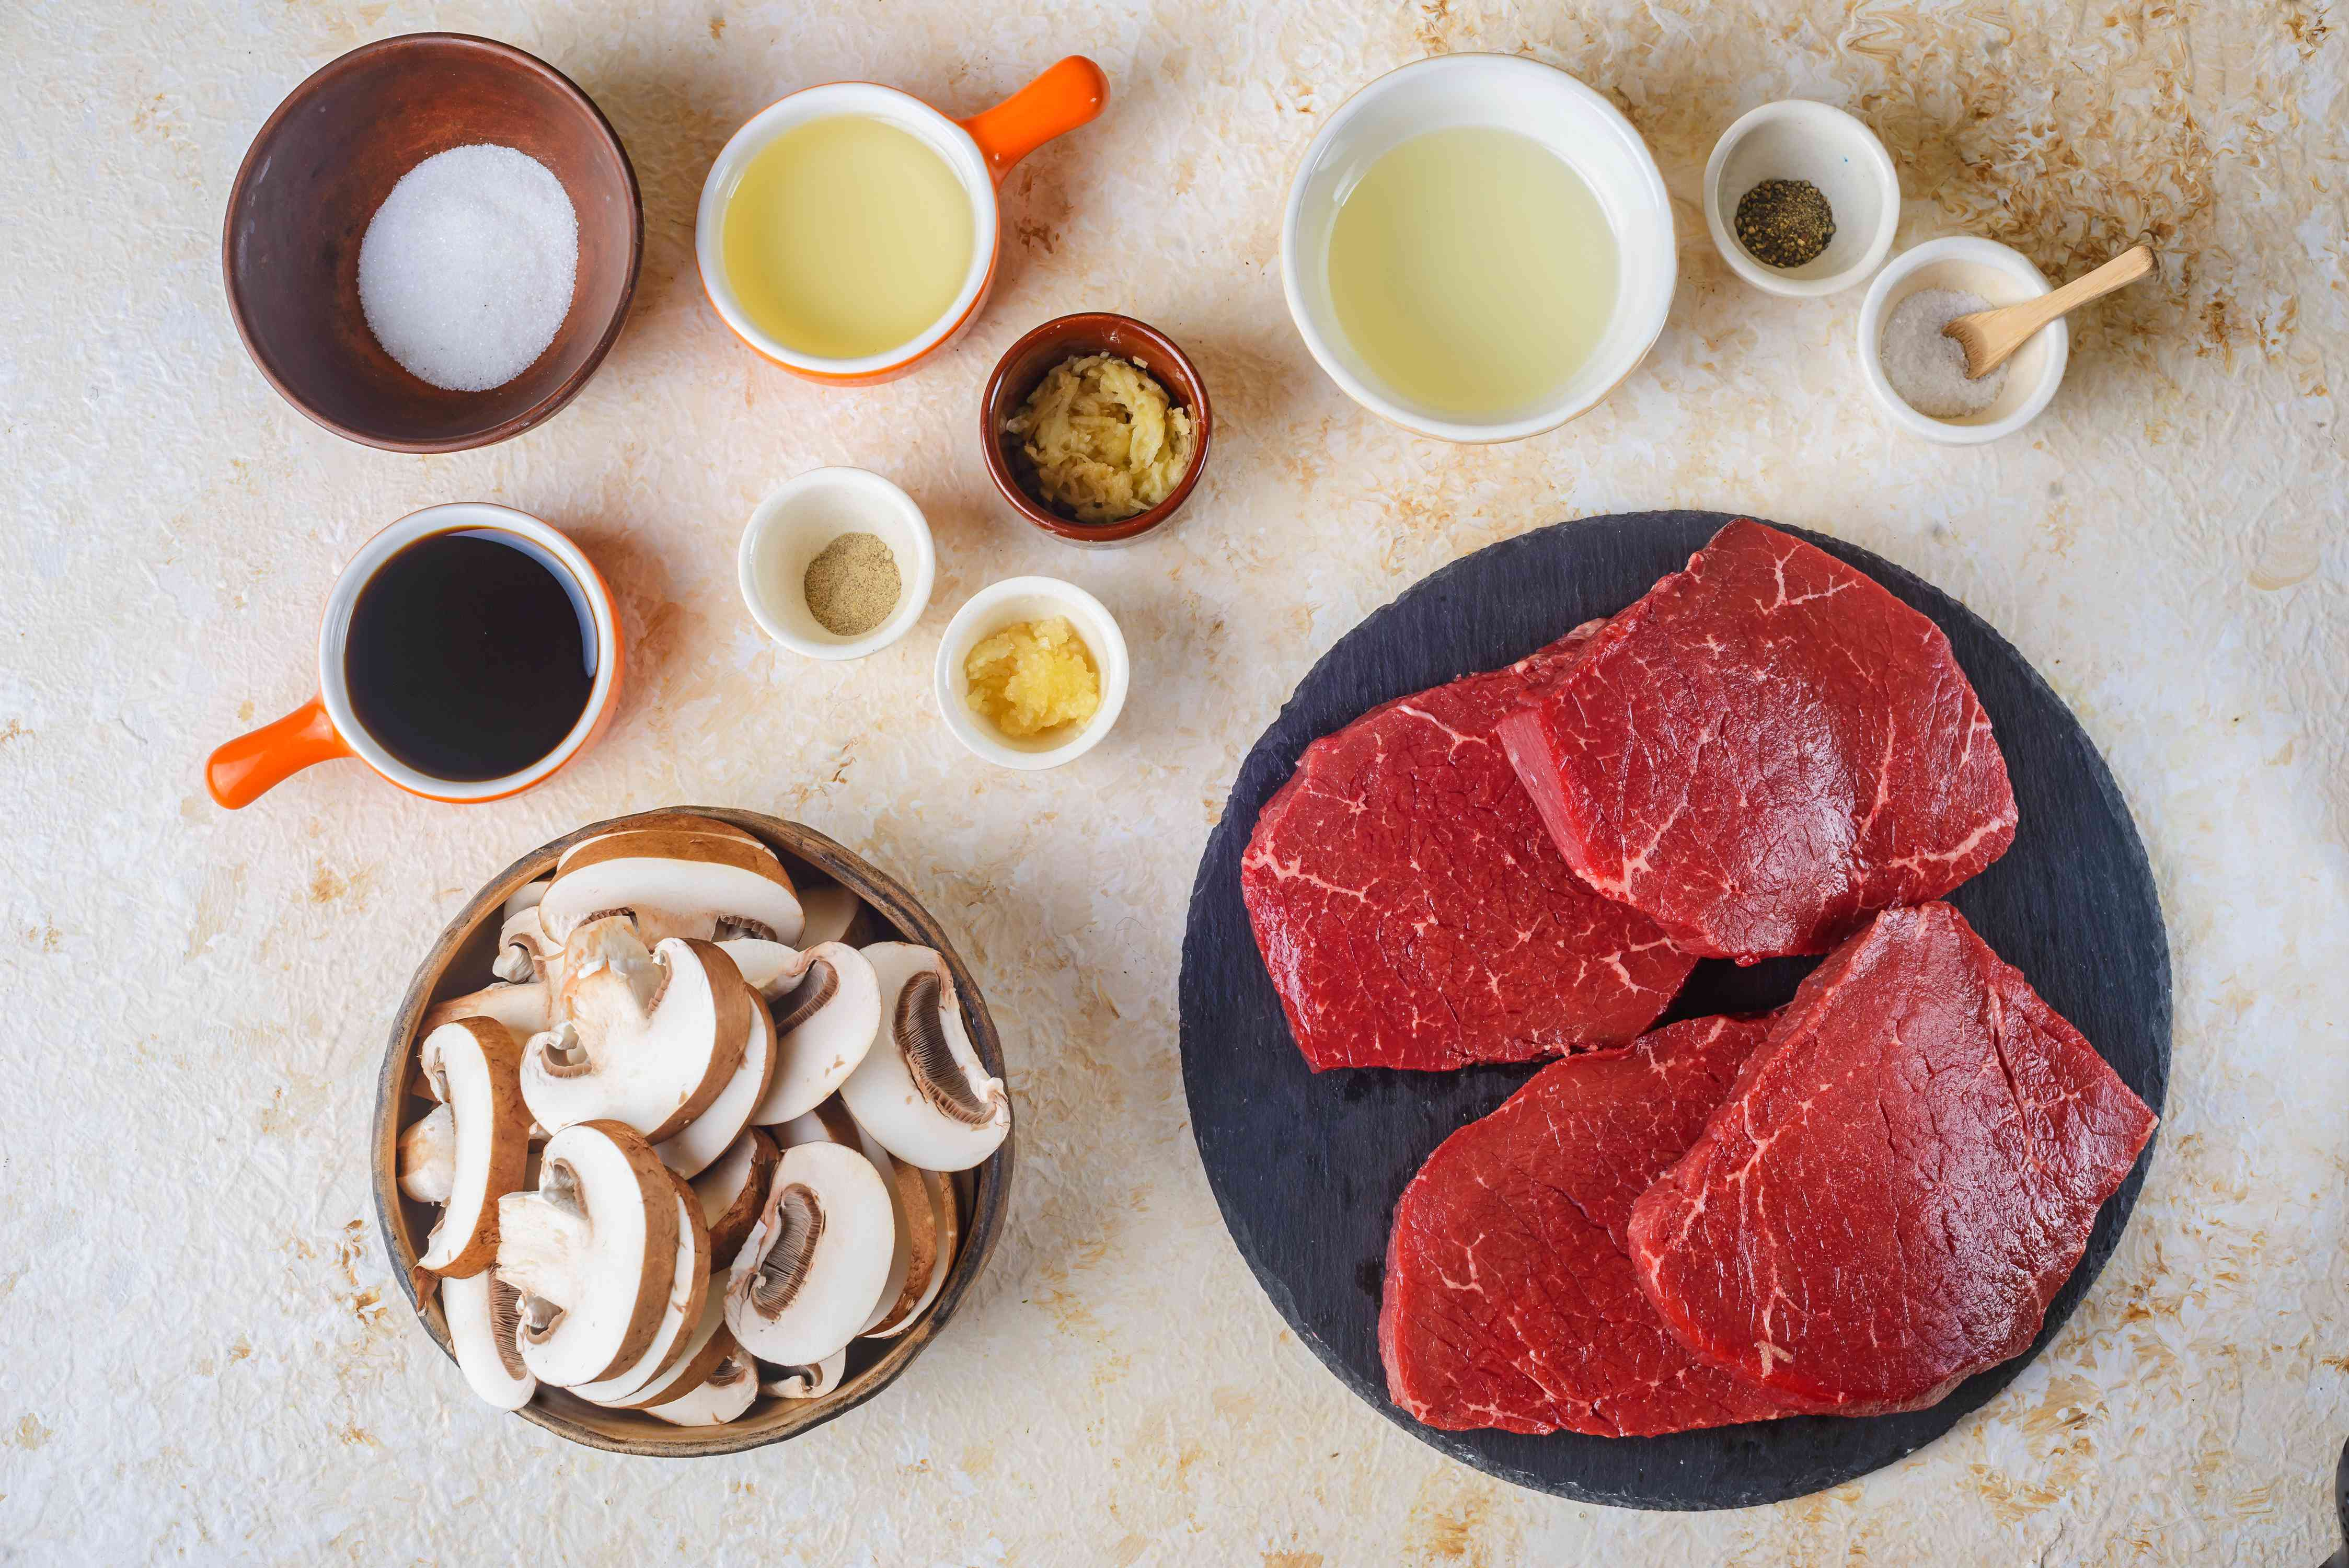 Ingredients for hibachi-style steak